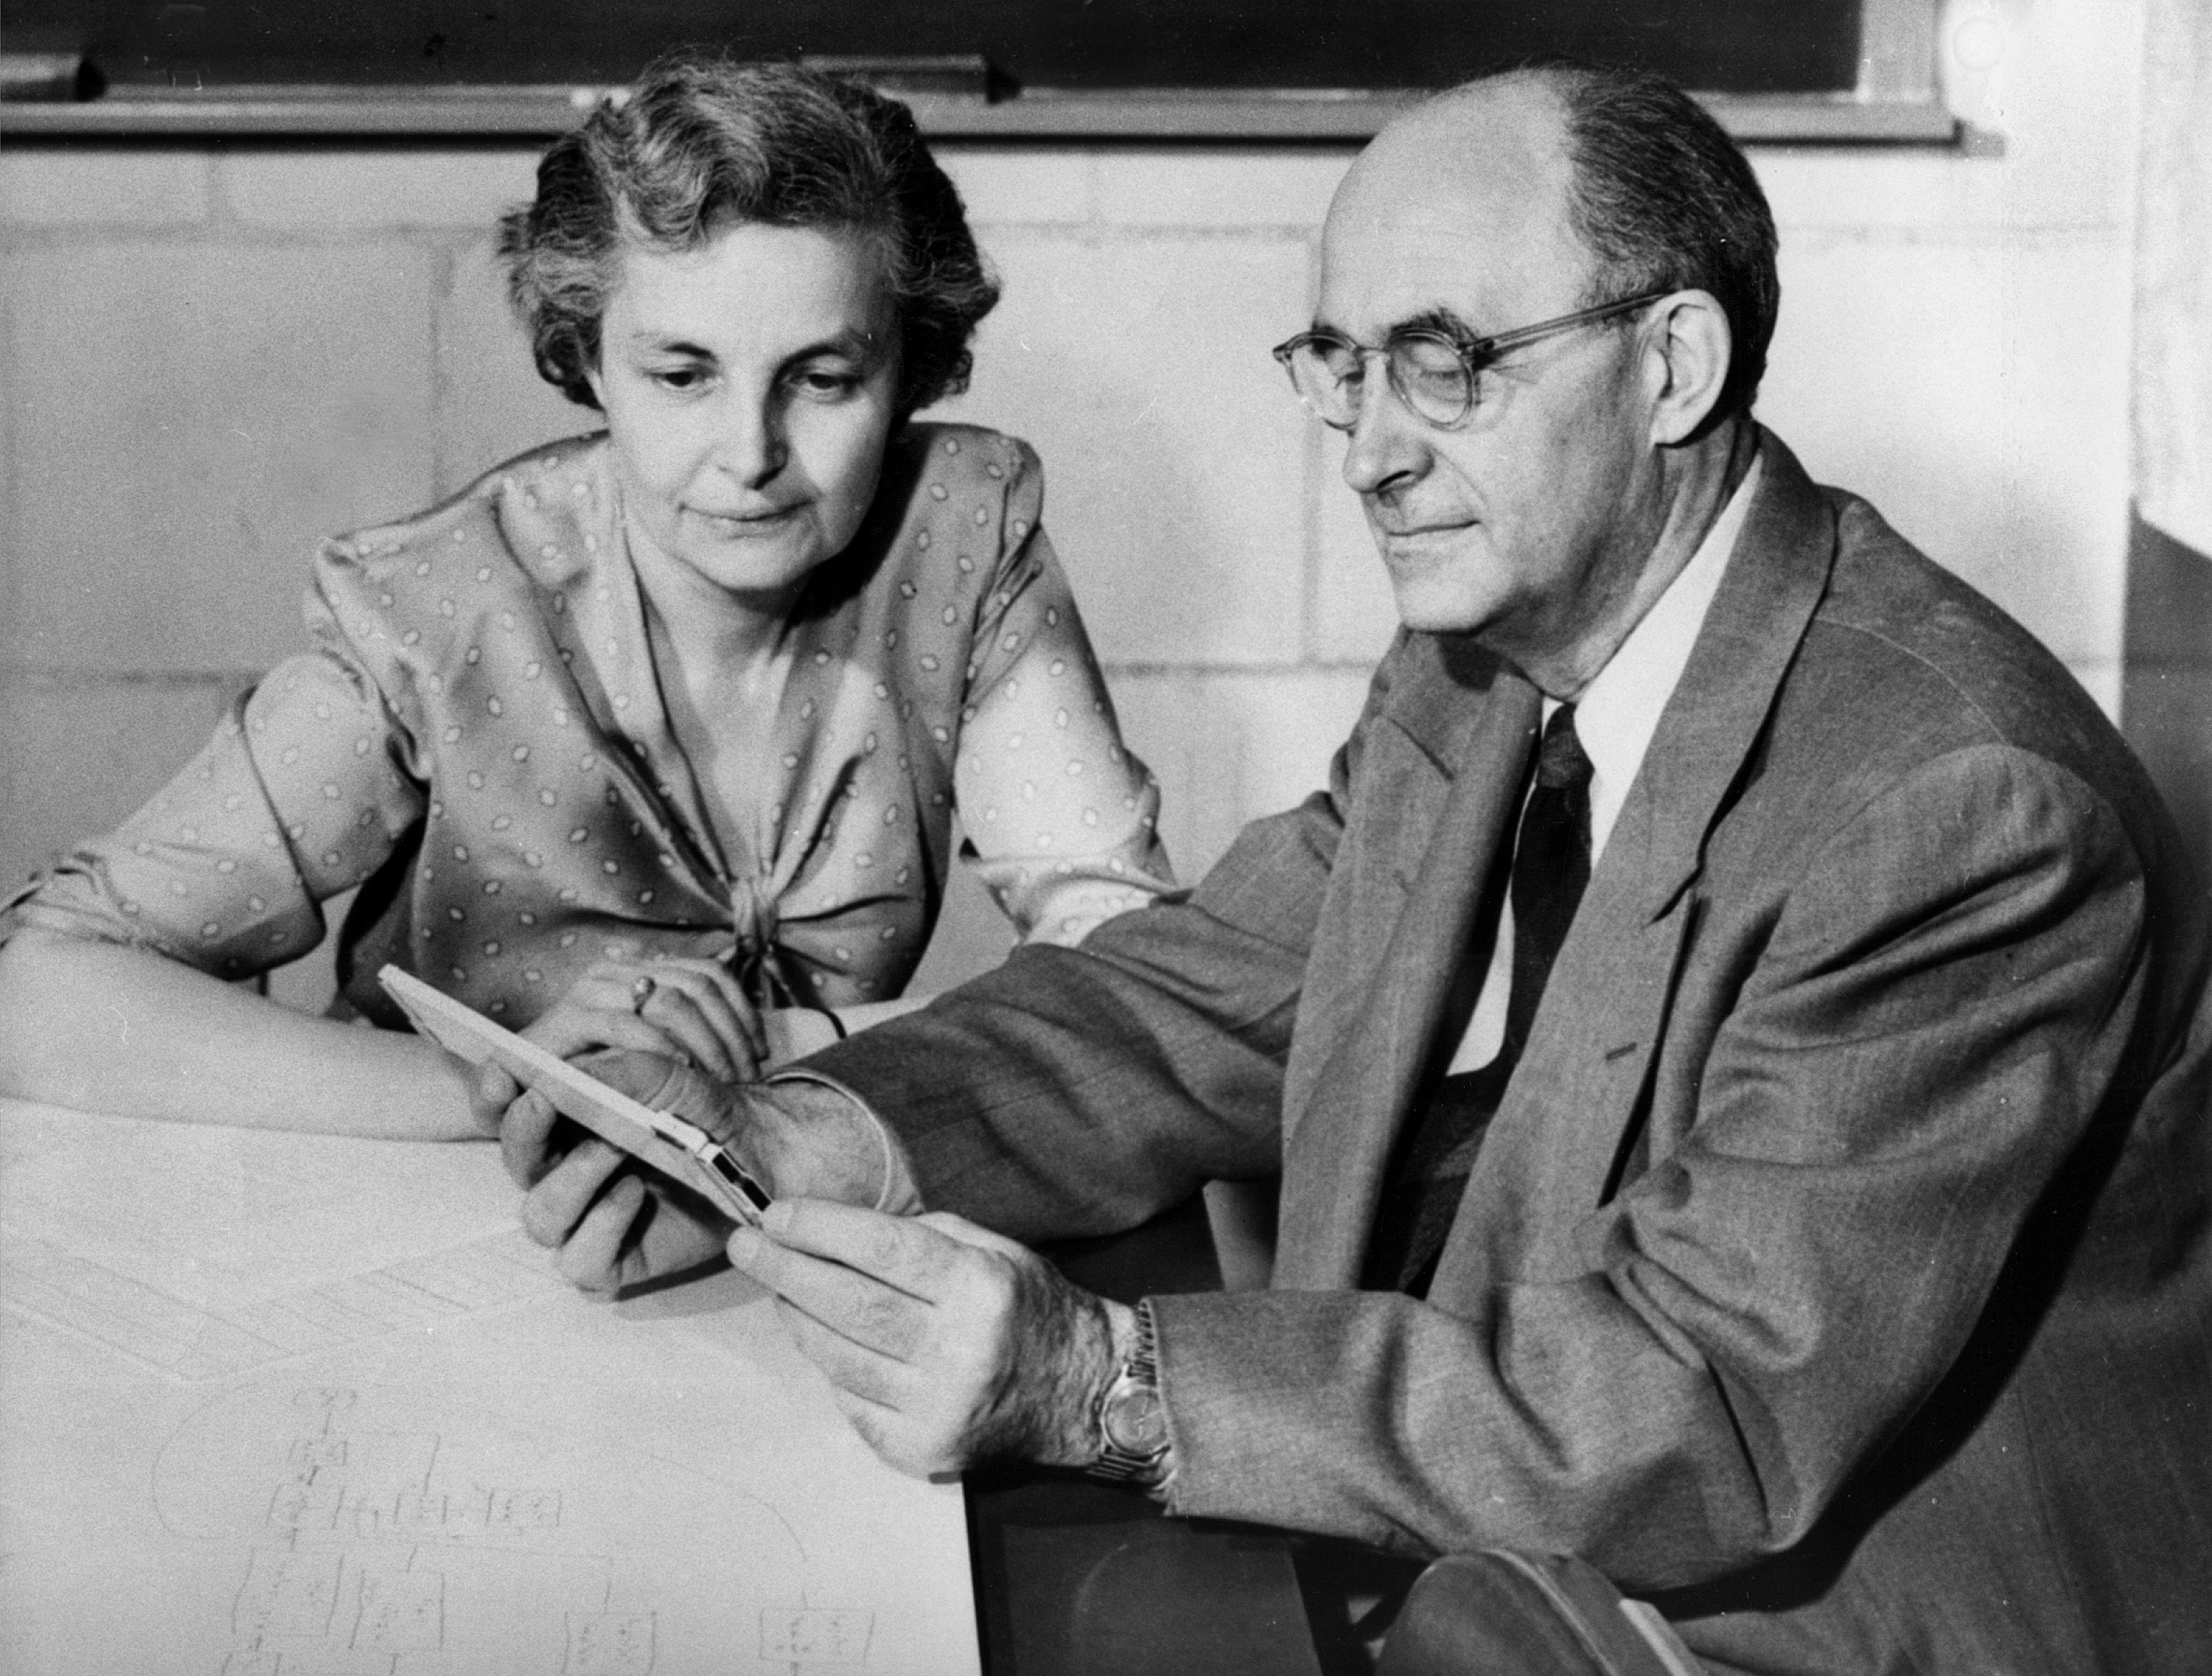 Laura and Enrico Fermi